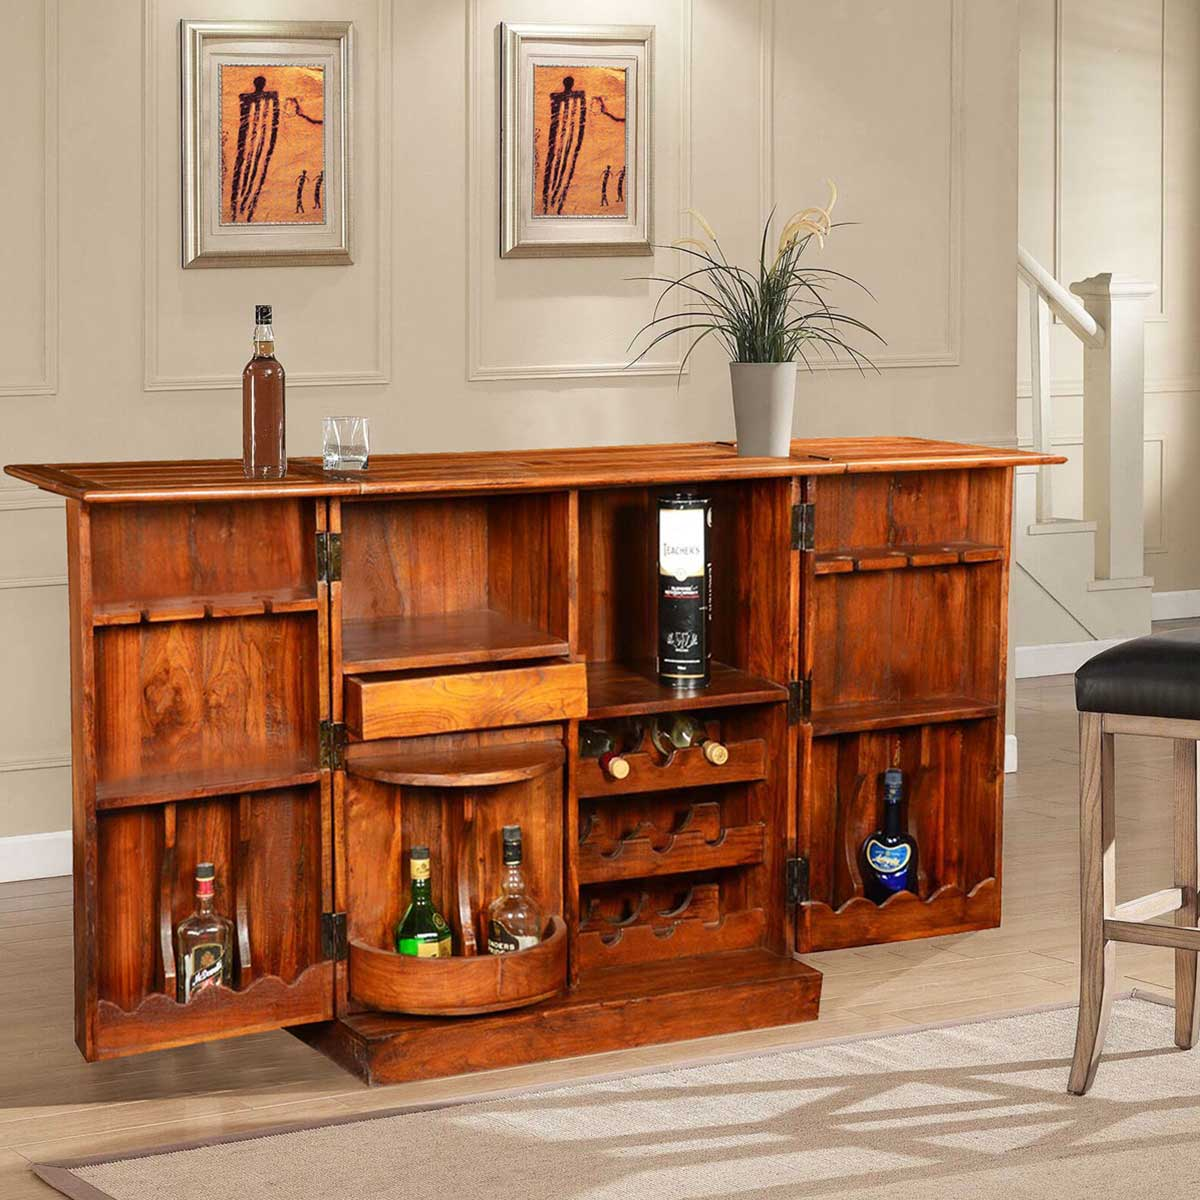 Double Diamond Expandable Wine Bar Cabinet with Wine Bottle Rack